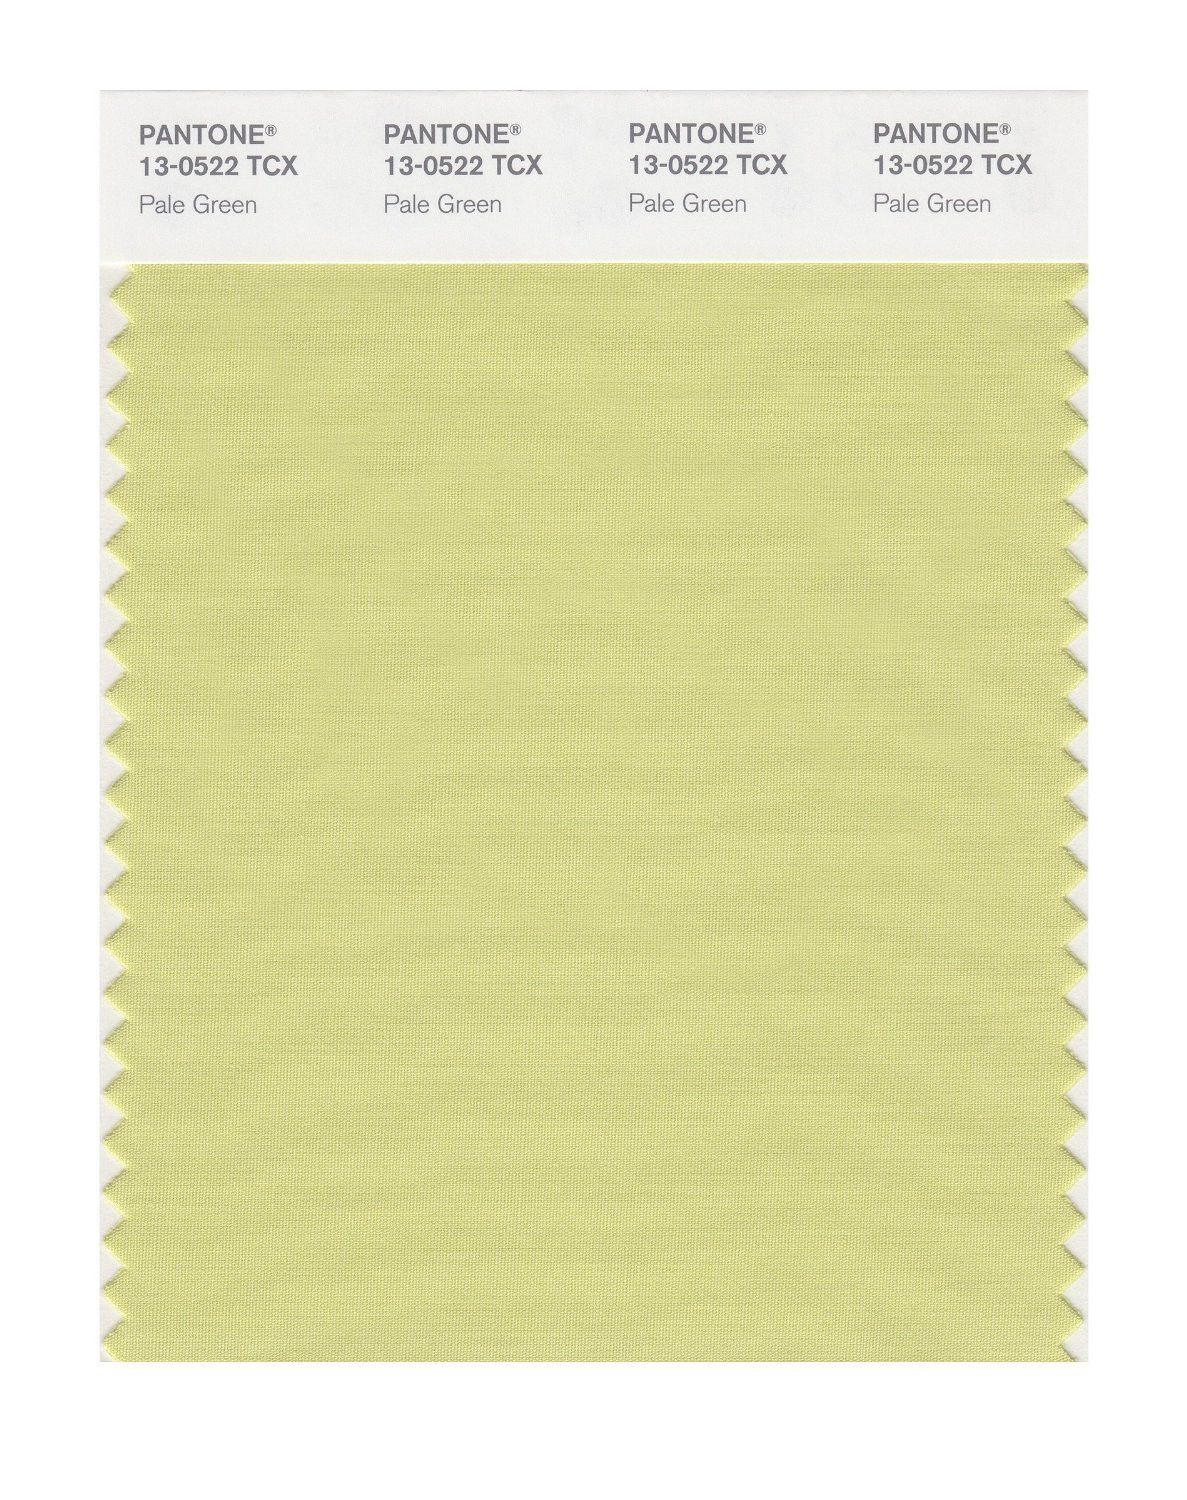 13-0522 TCX Pale Green PANTONE FHI Color Swatch Card   Products ...